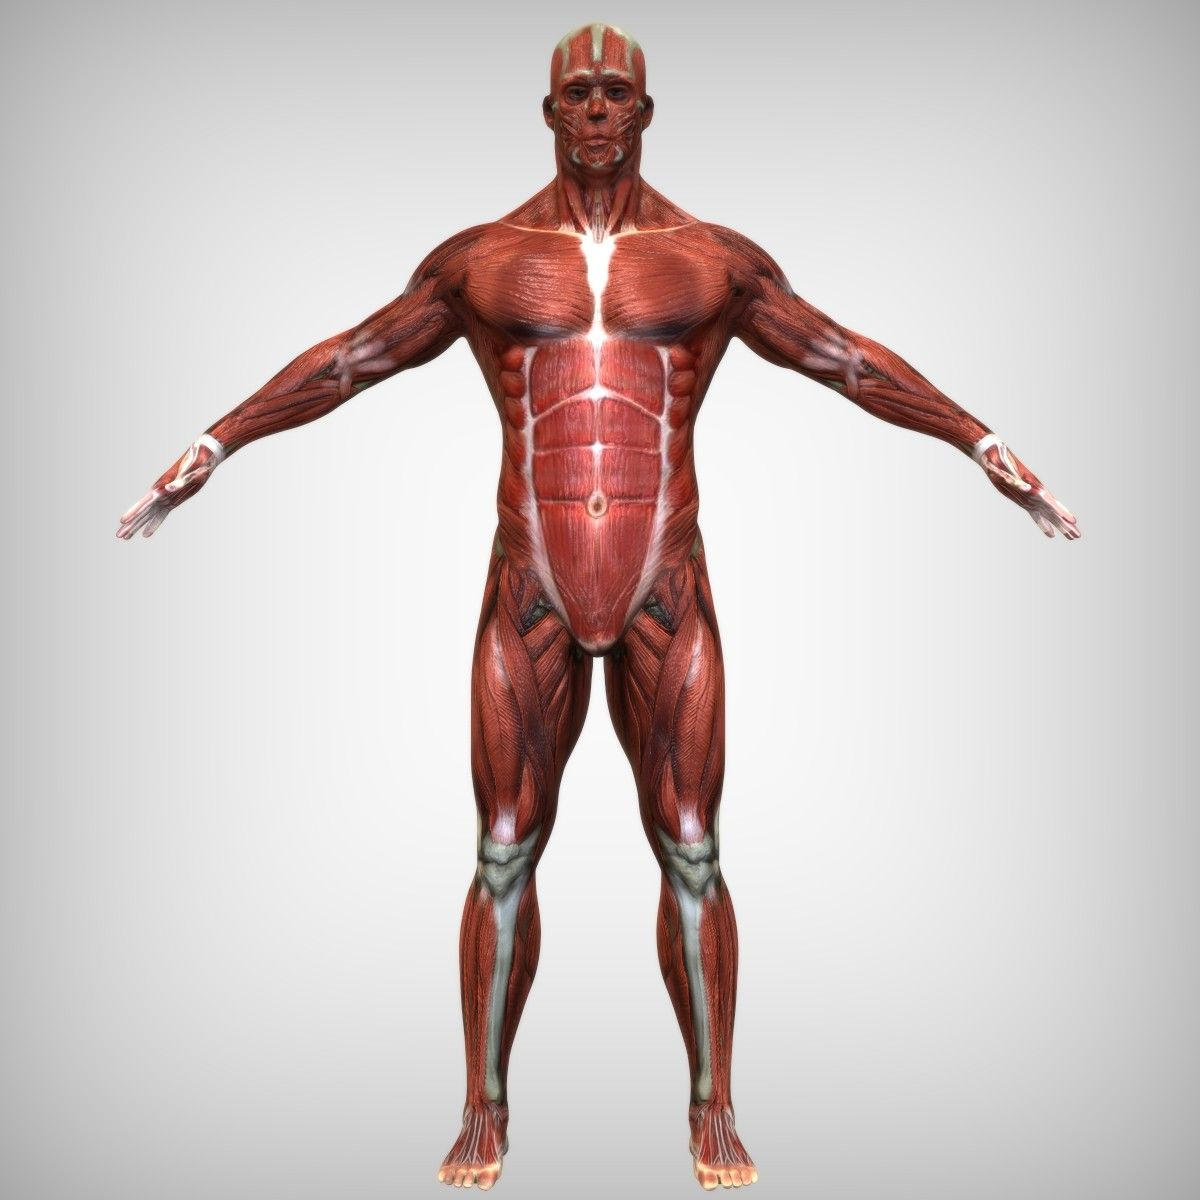 3d model muscular male | 3d Anatomy | Pinterest | 3d and 3d anatomy